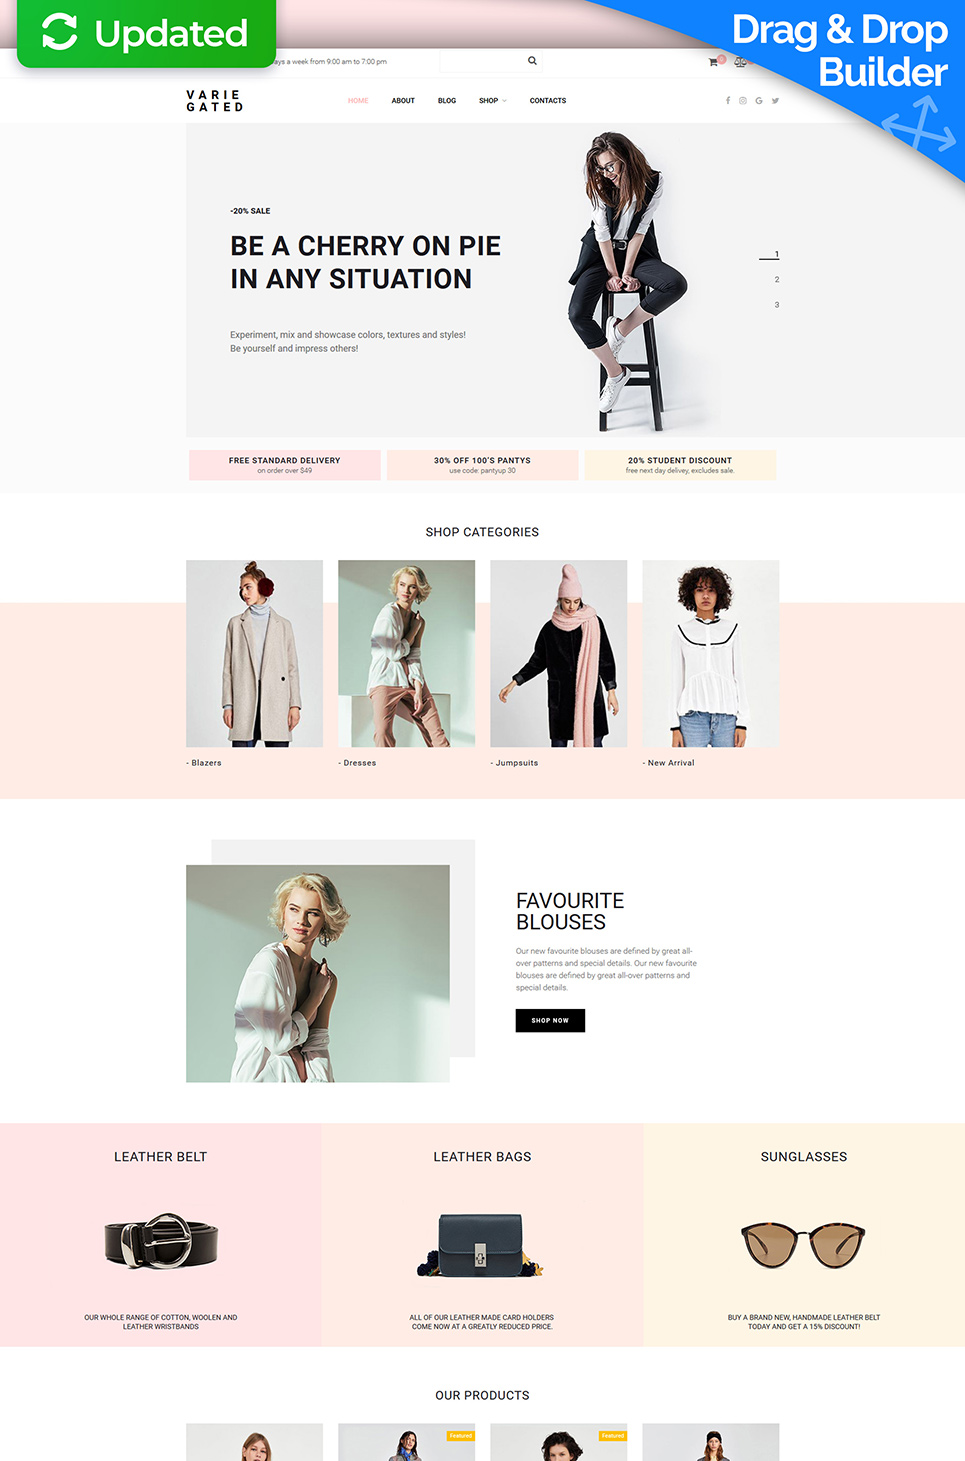 Website Design Template 73783 - style fashionable brandstore ecommerce luxury shopping sale womens boutique estore estores collection dresses ladies blazers jumpsuits